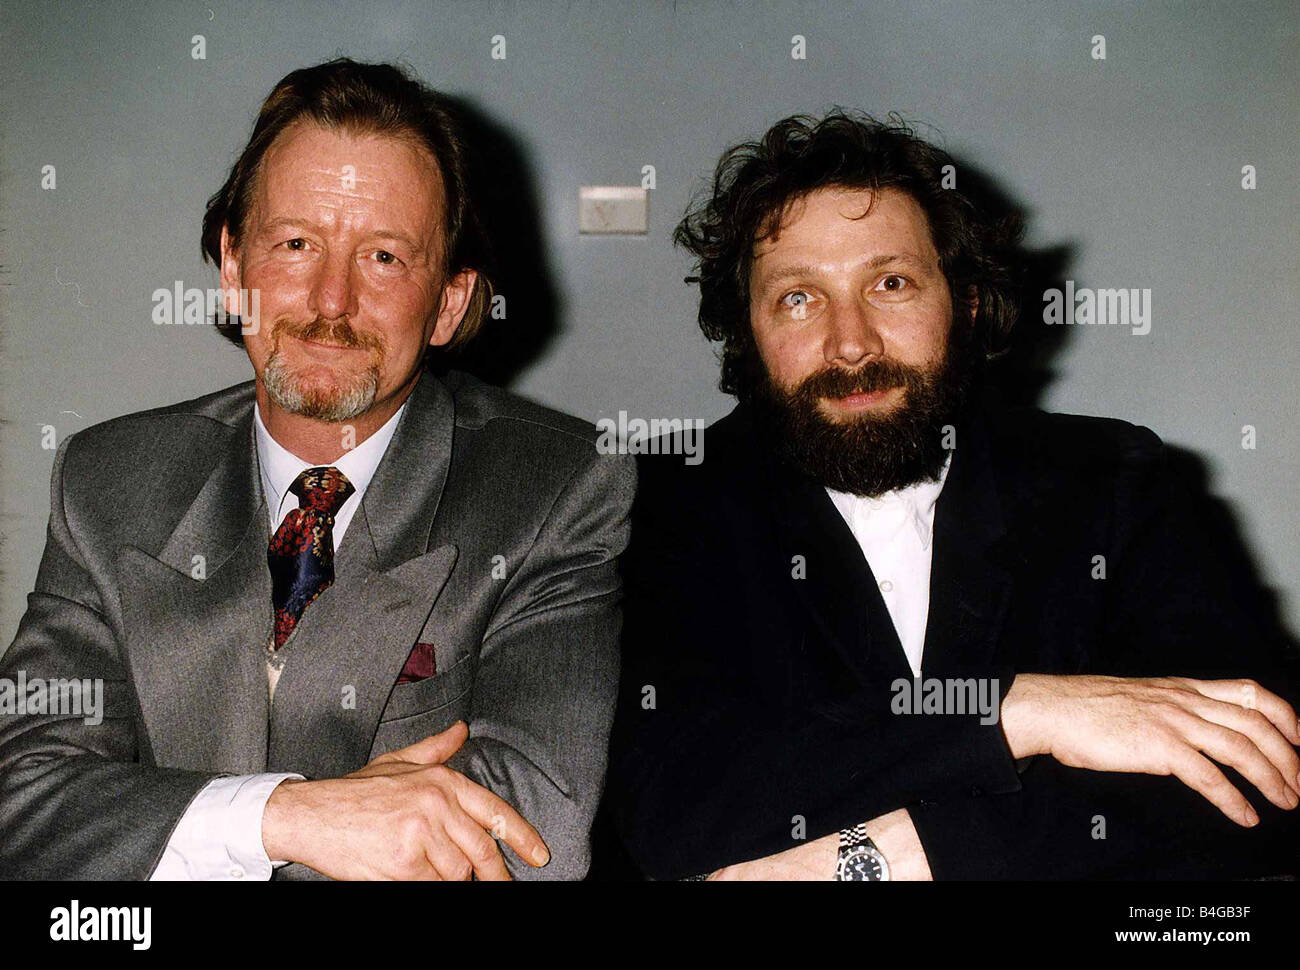 ronald pickup harry potter